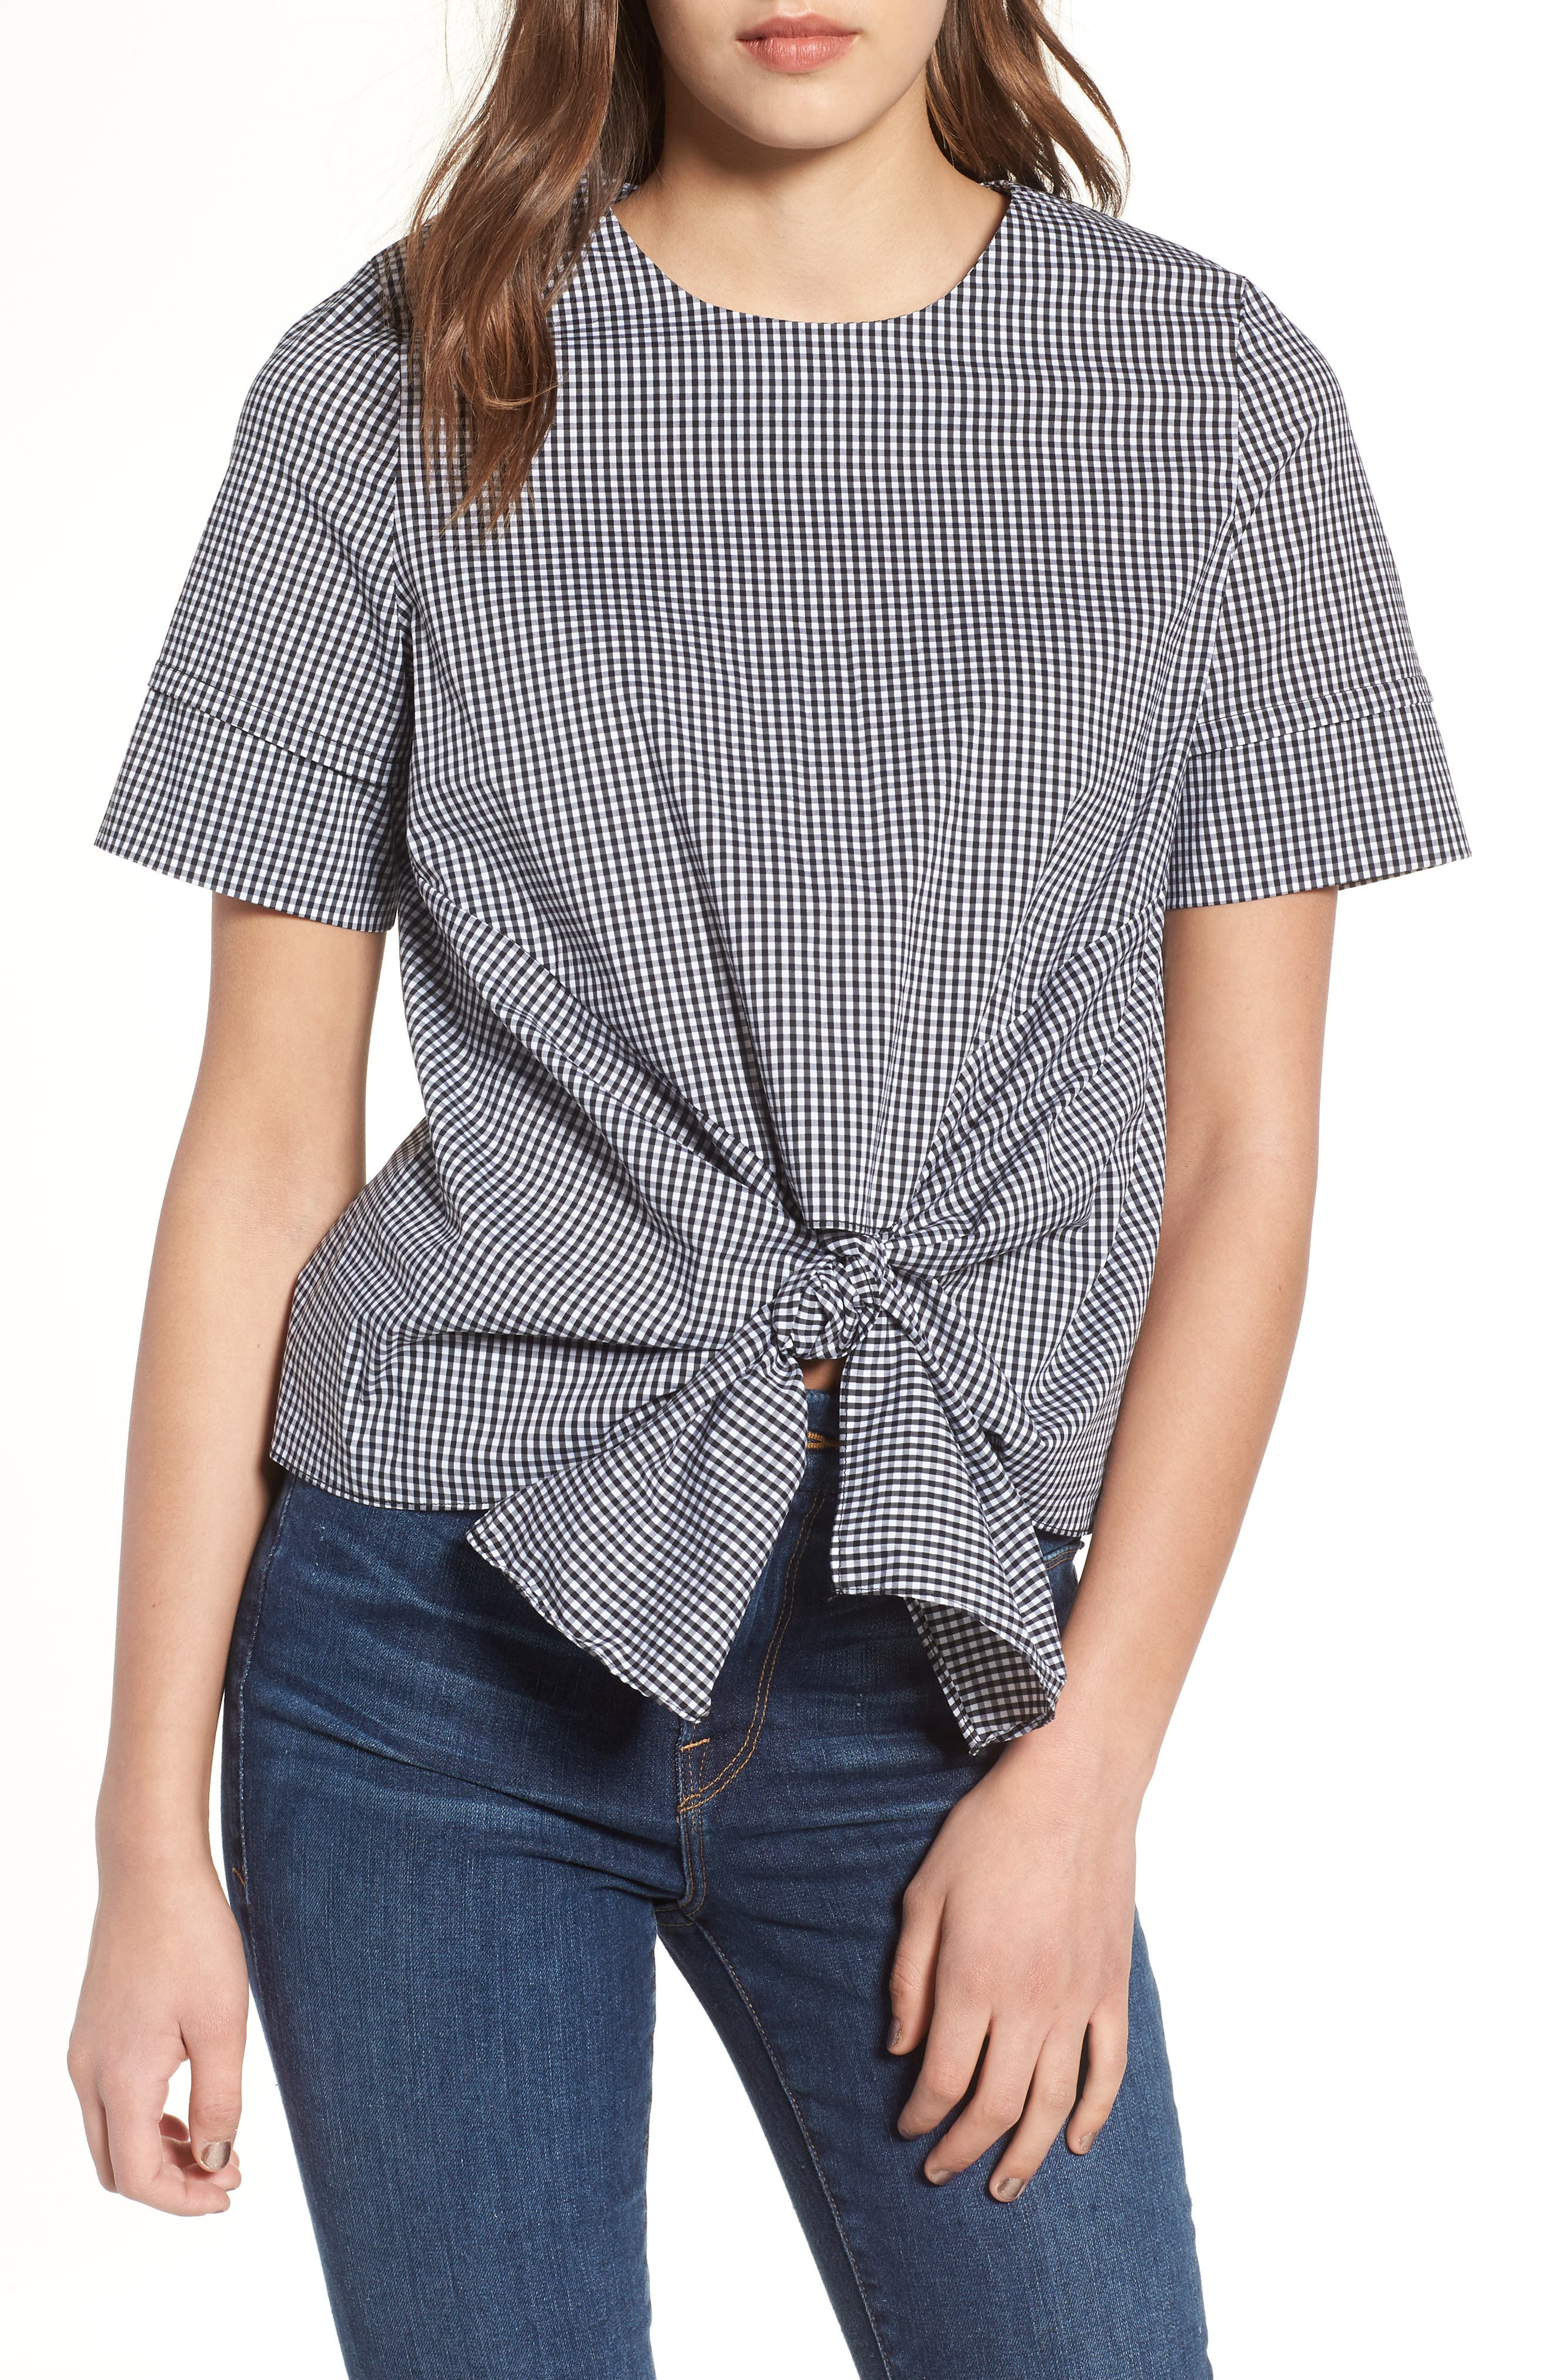 Bishop + Young Gingham Tie Front Blouse,                         Main,                         color, Gingham